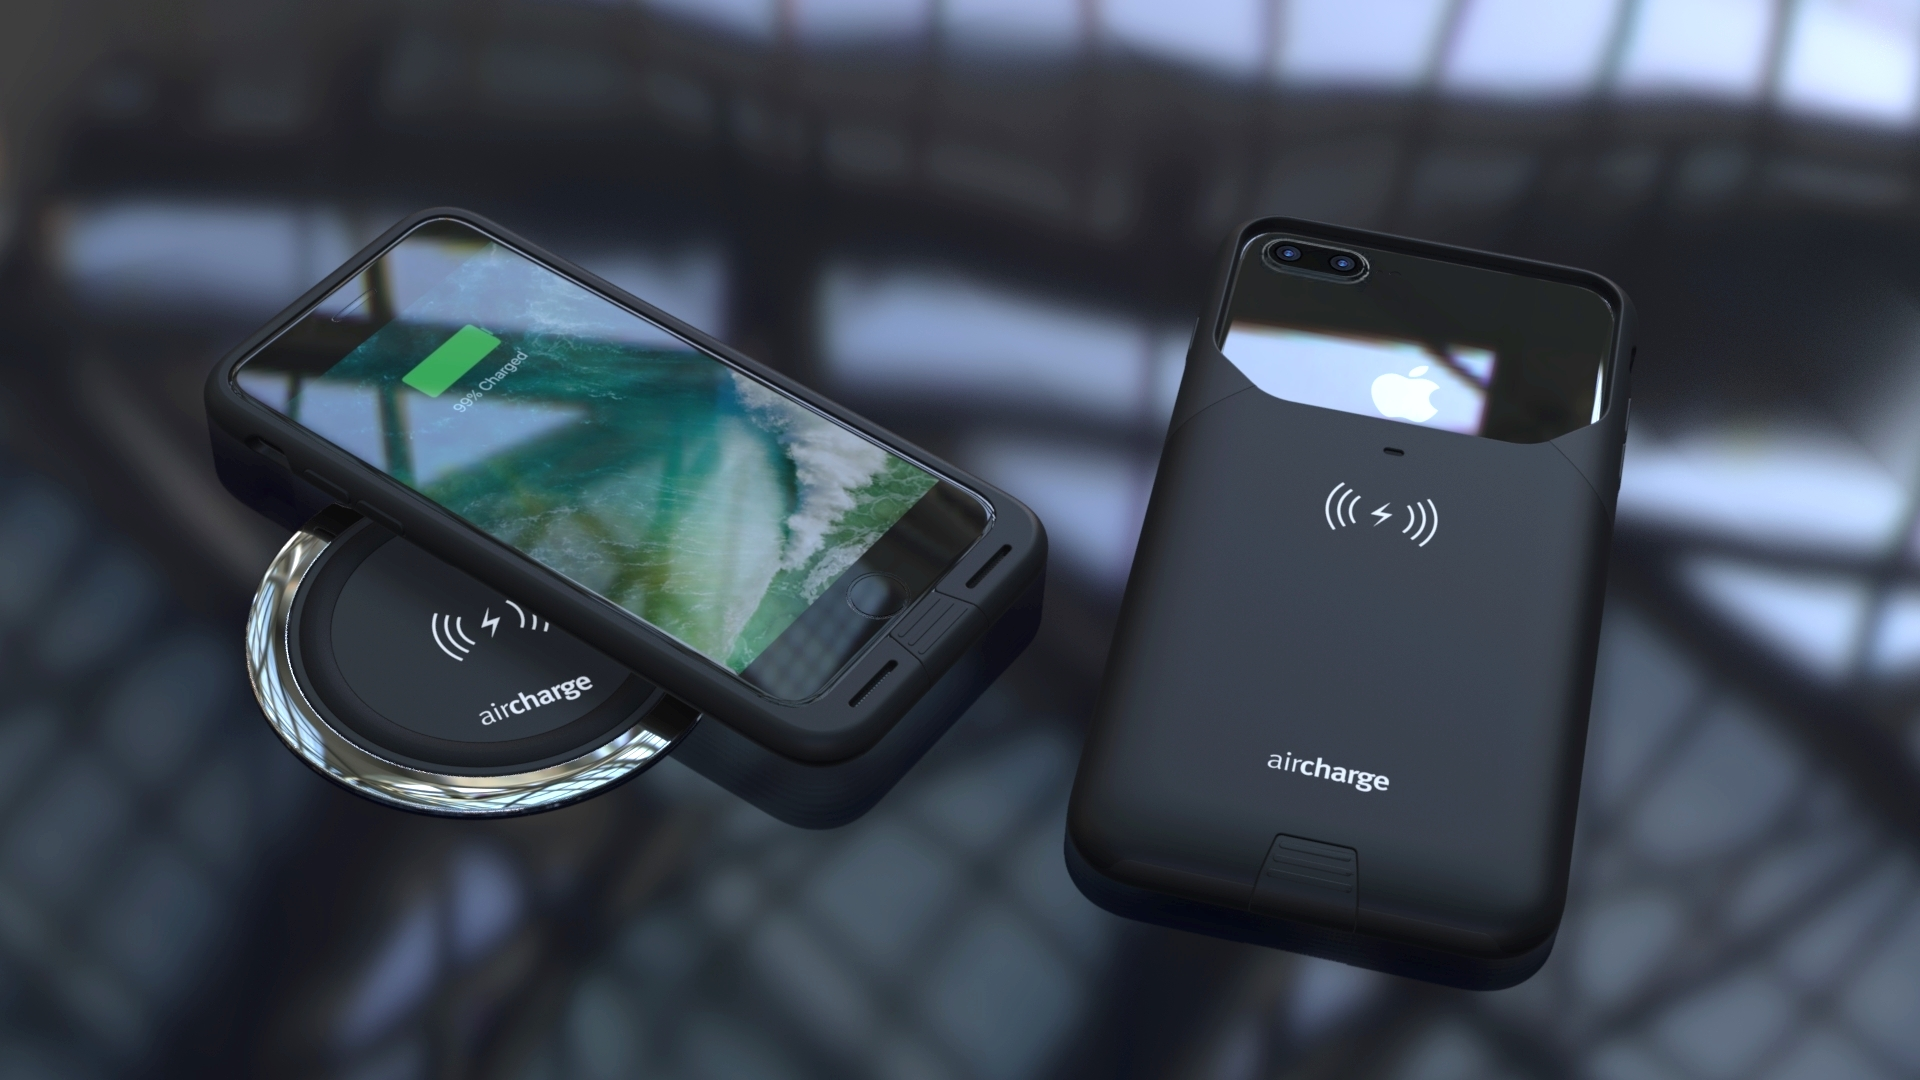 wireless charging with the iPhone 7